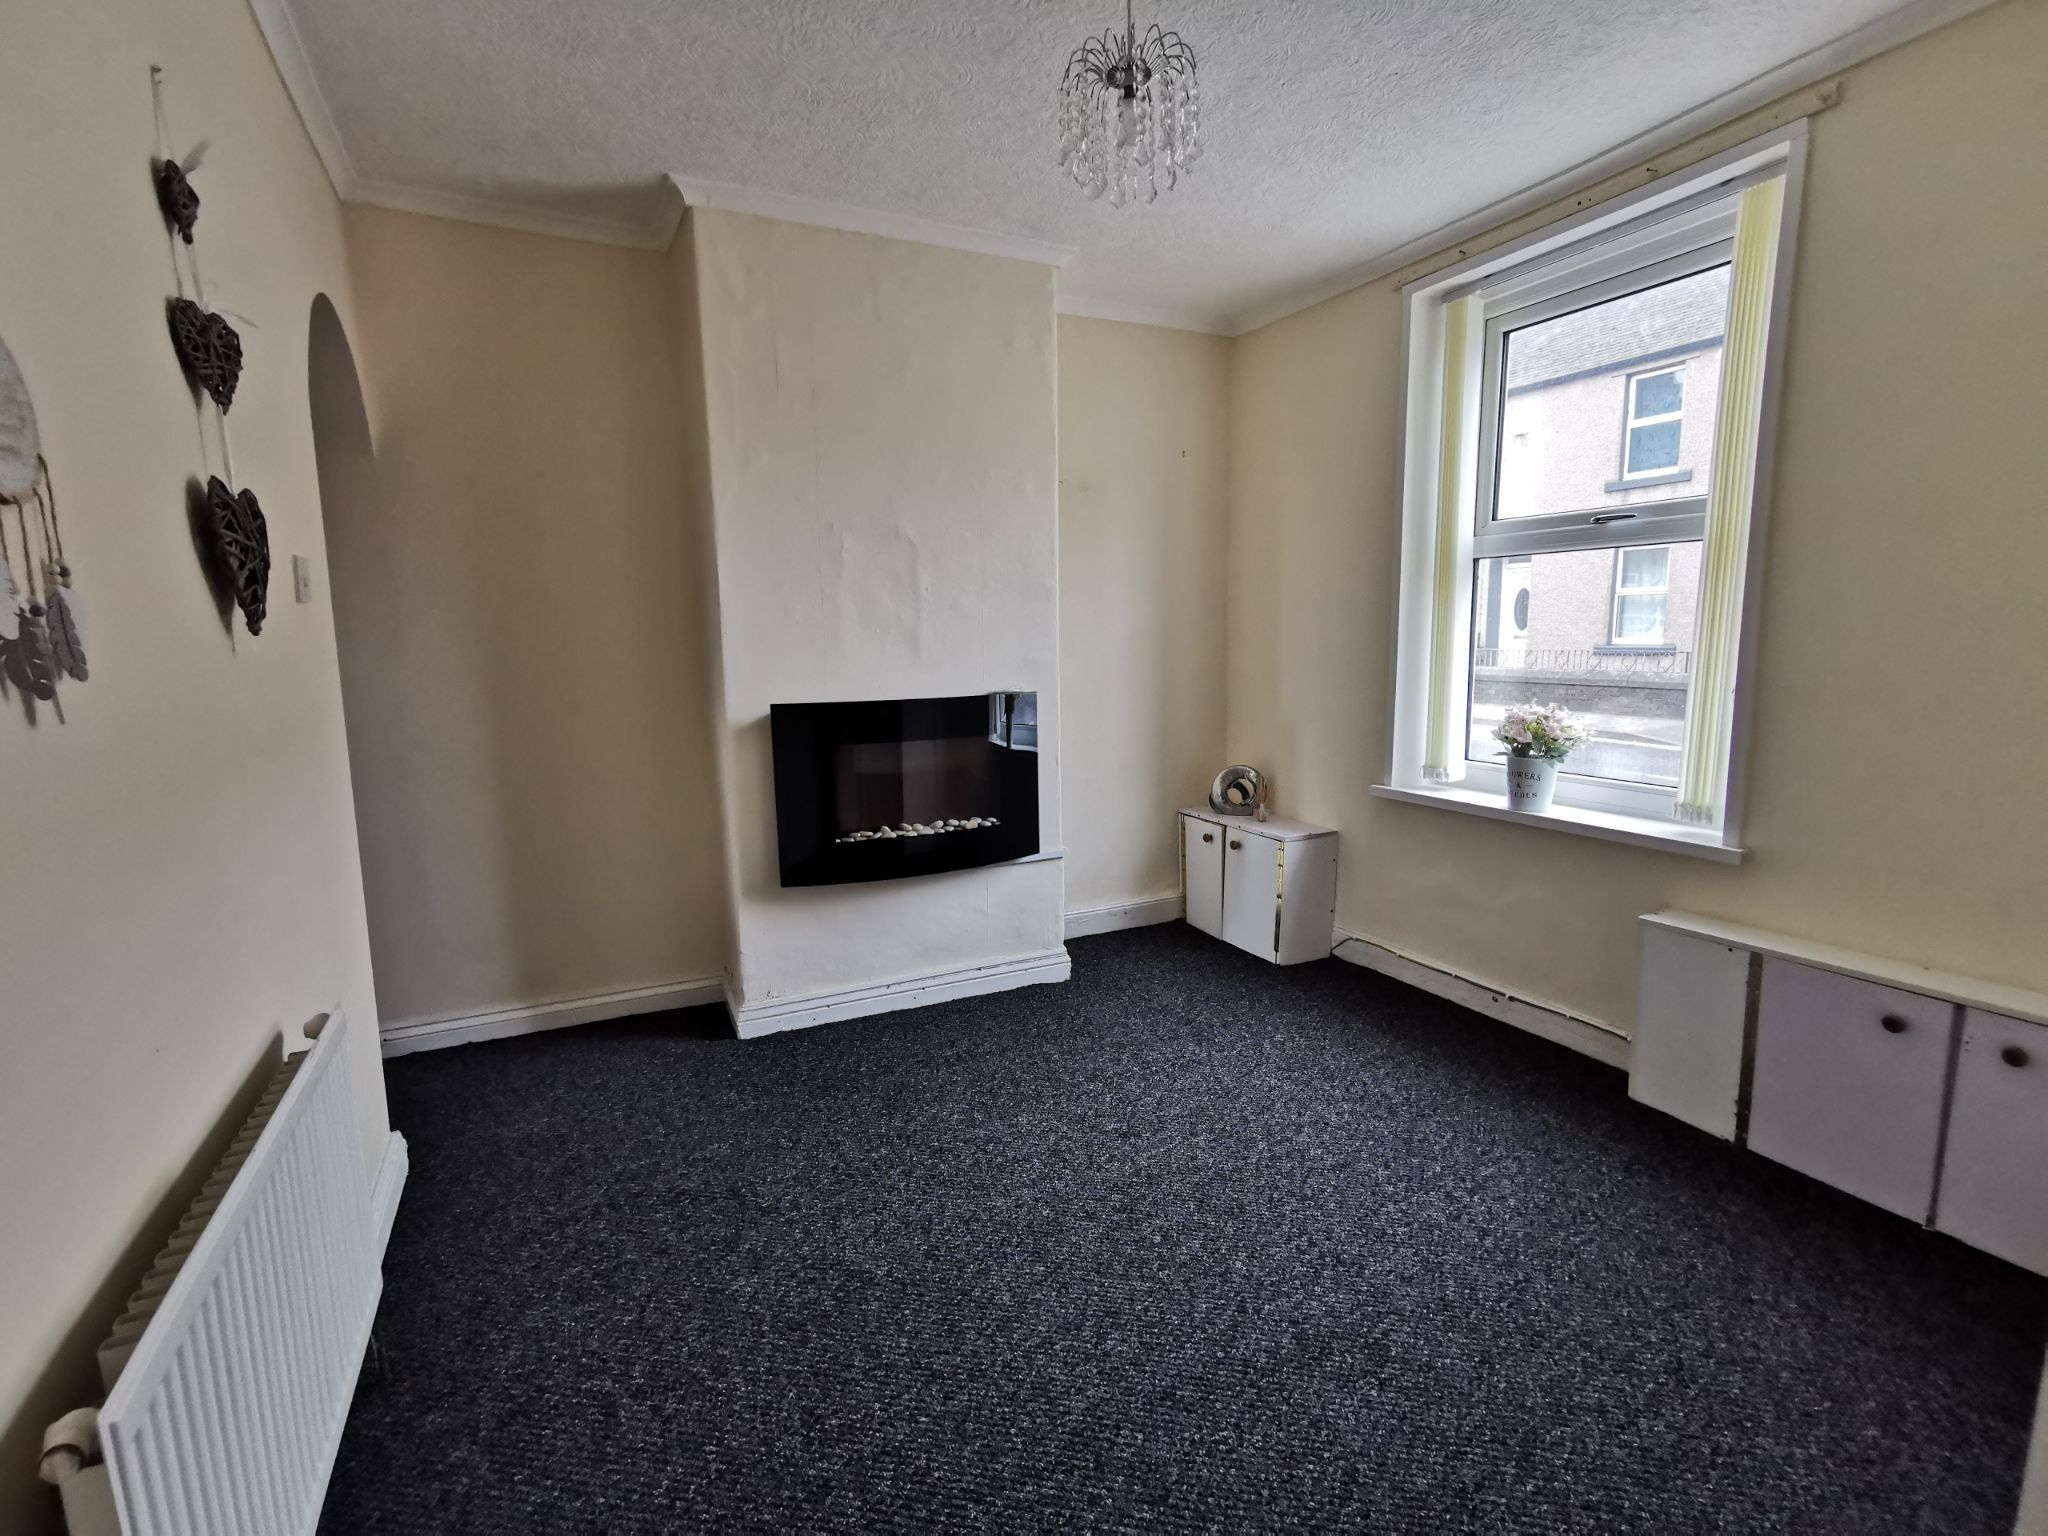 2 bedroom mid terraced house For Sale in Allerdale - Photograph 2.